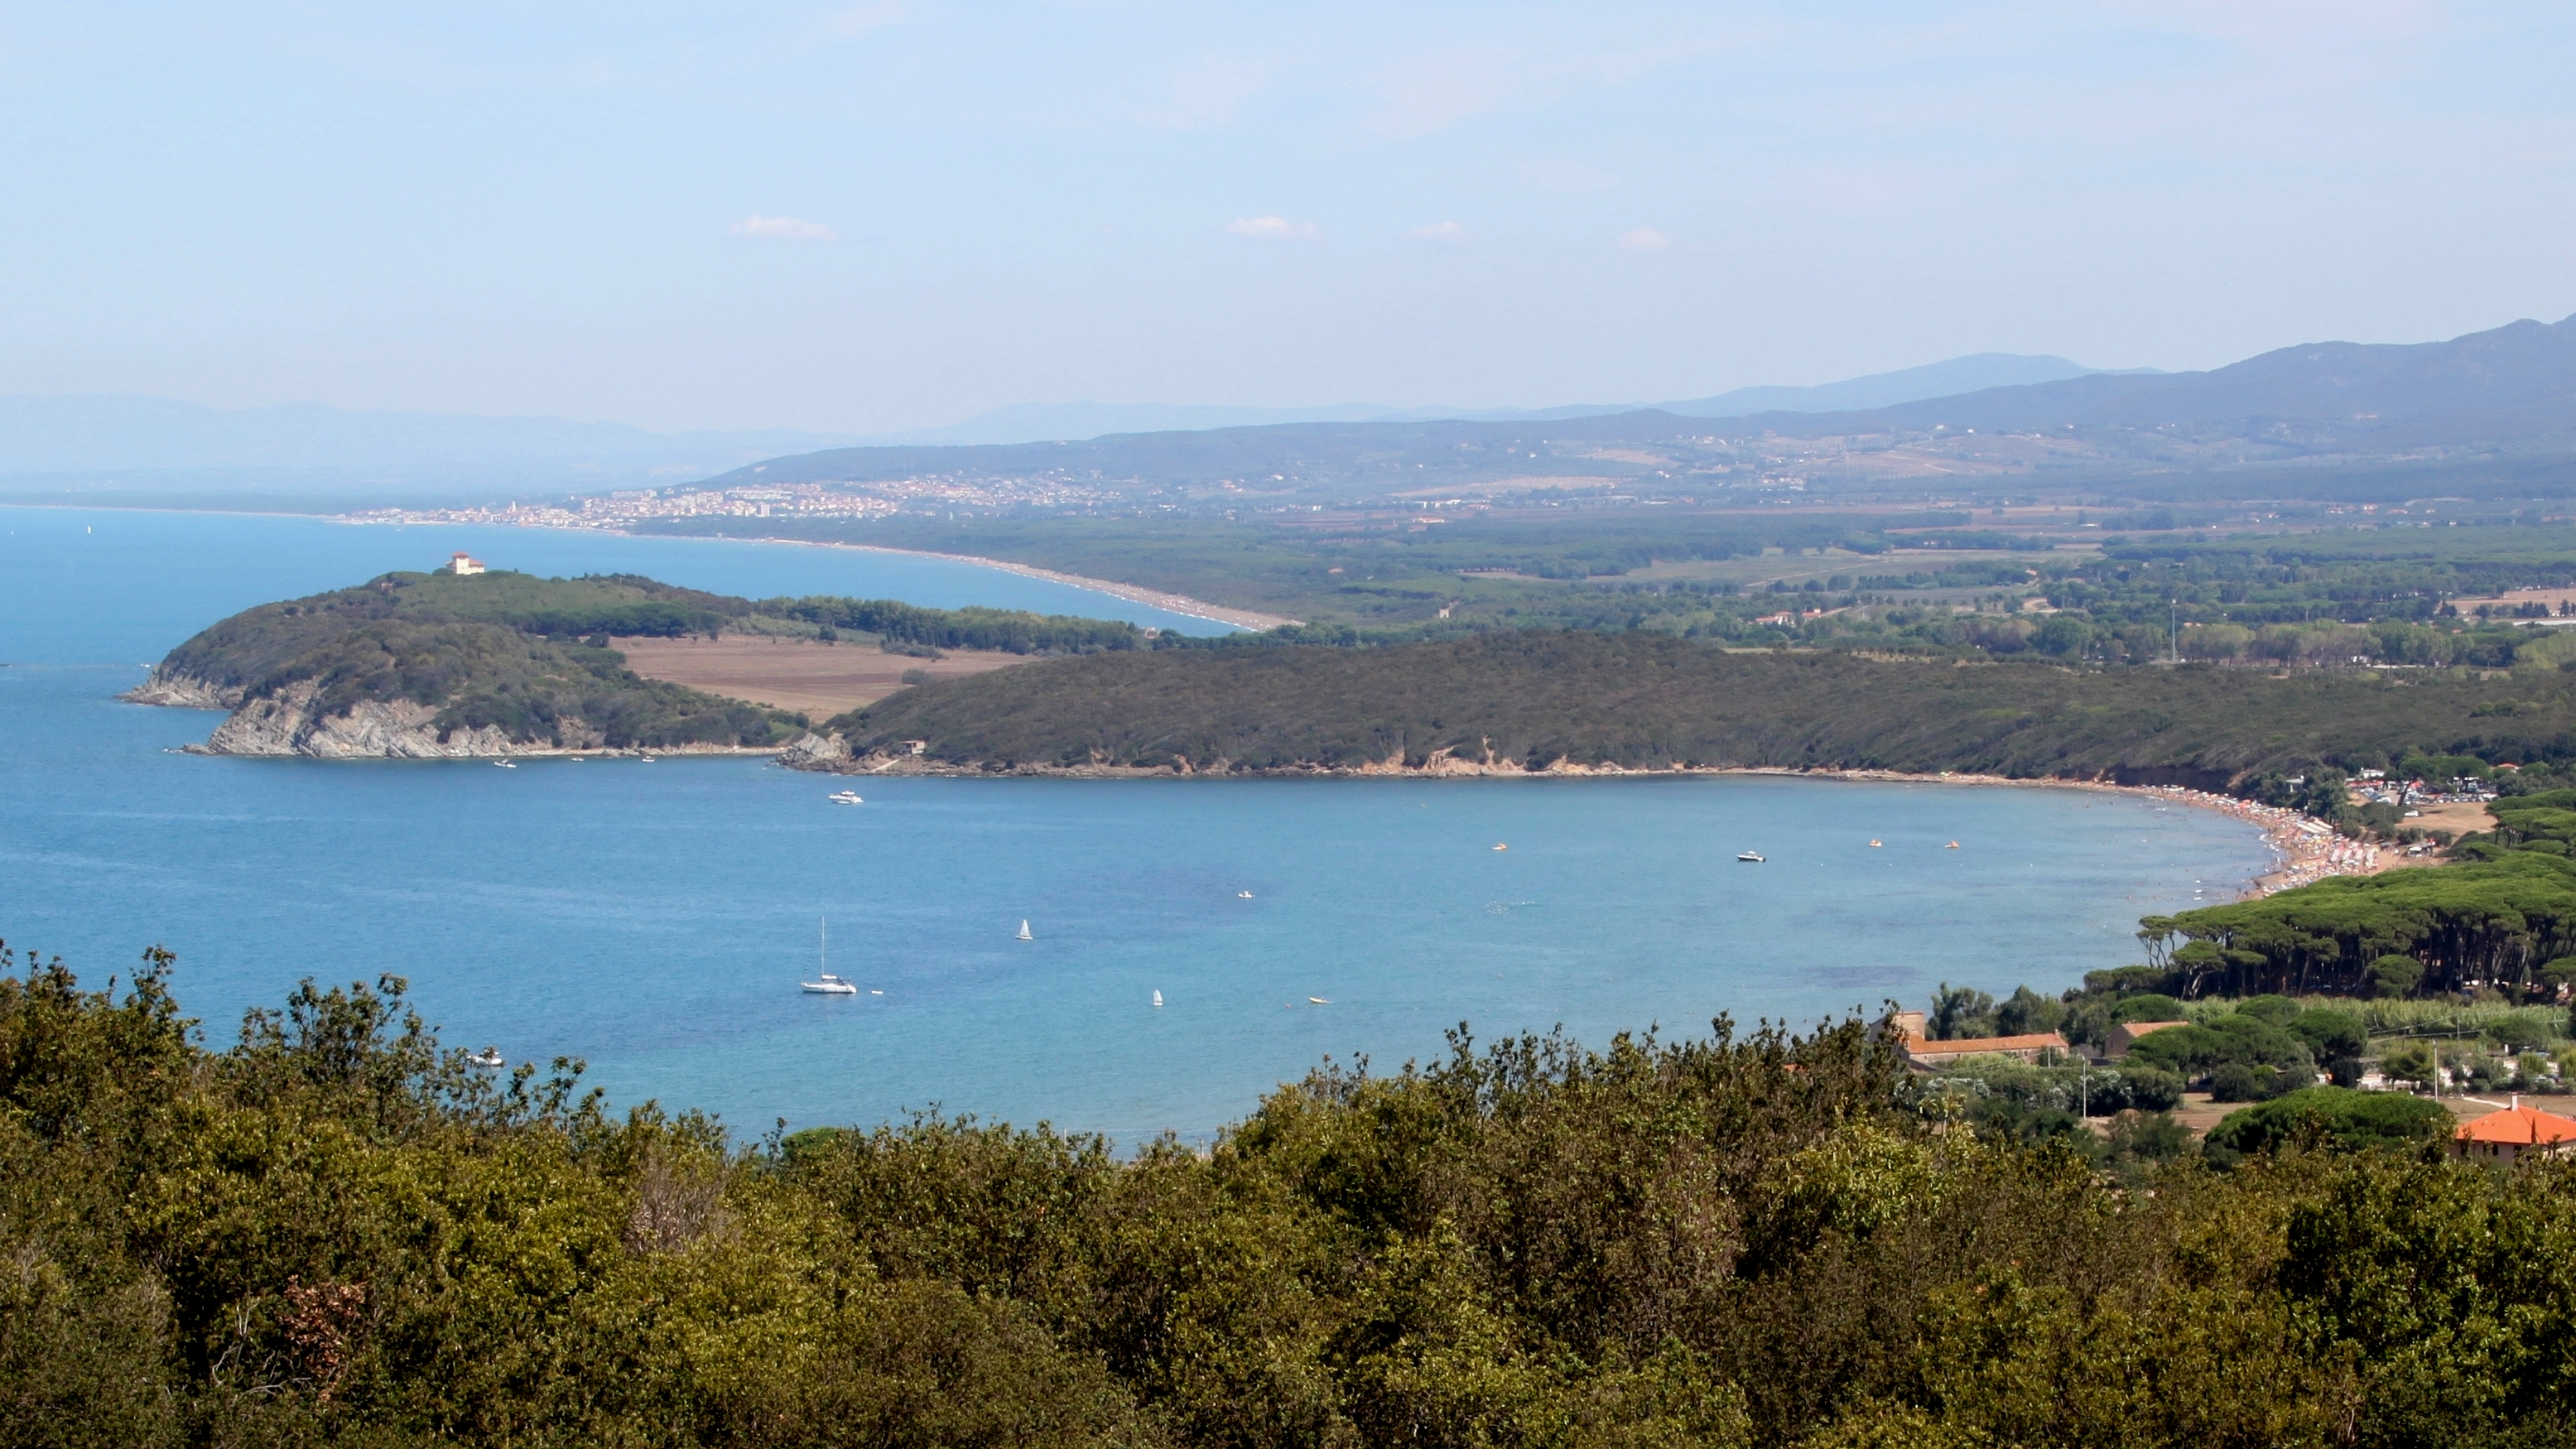 http://upload.wikimedia.org/wikipedia/commons/0/08/Gulf_of_Baratti_2012-08-29.jpg